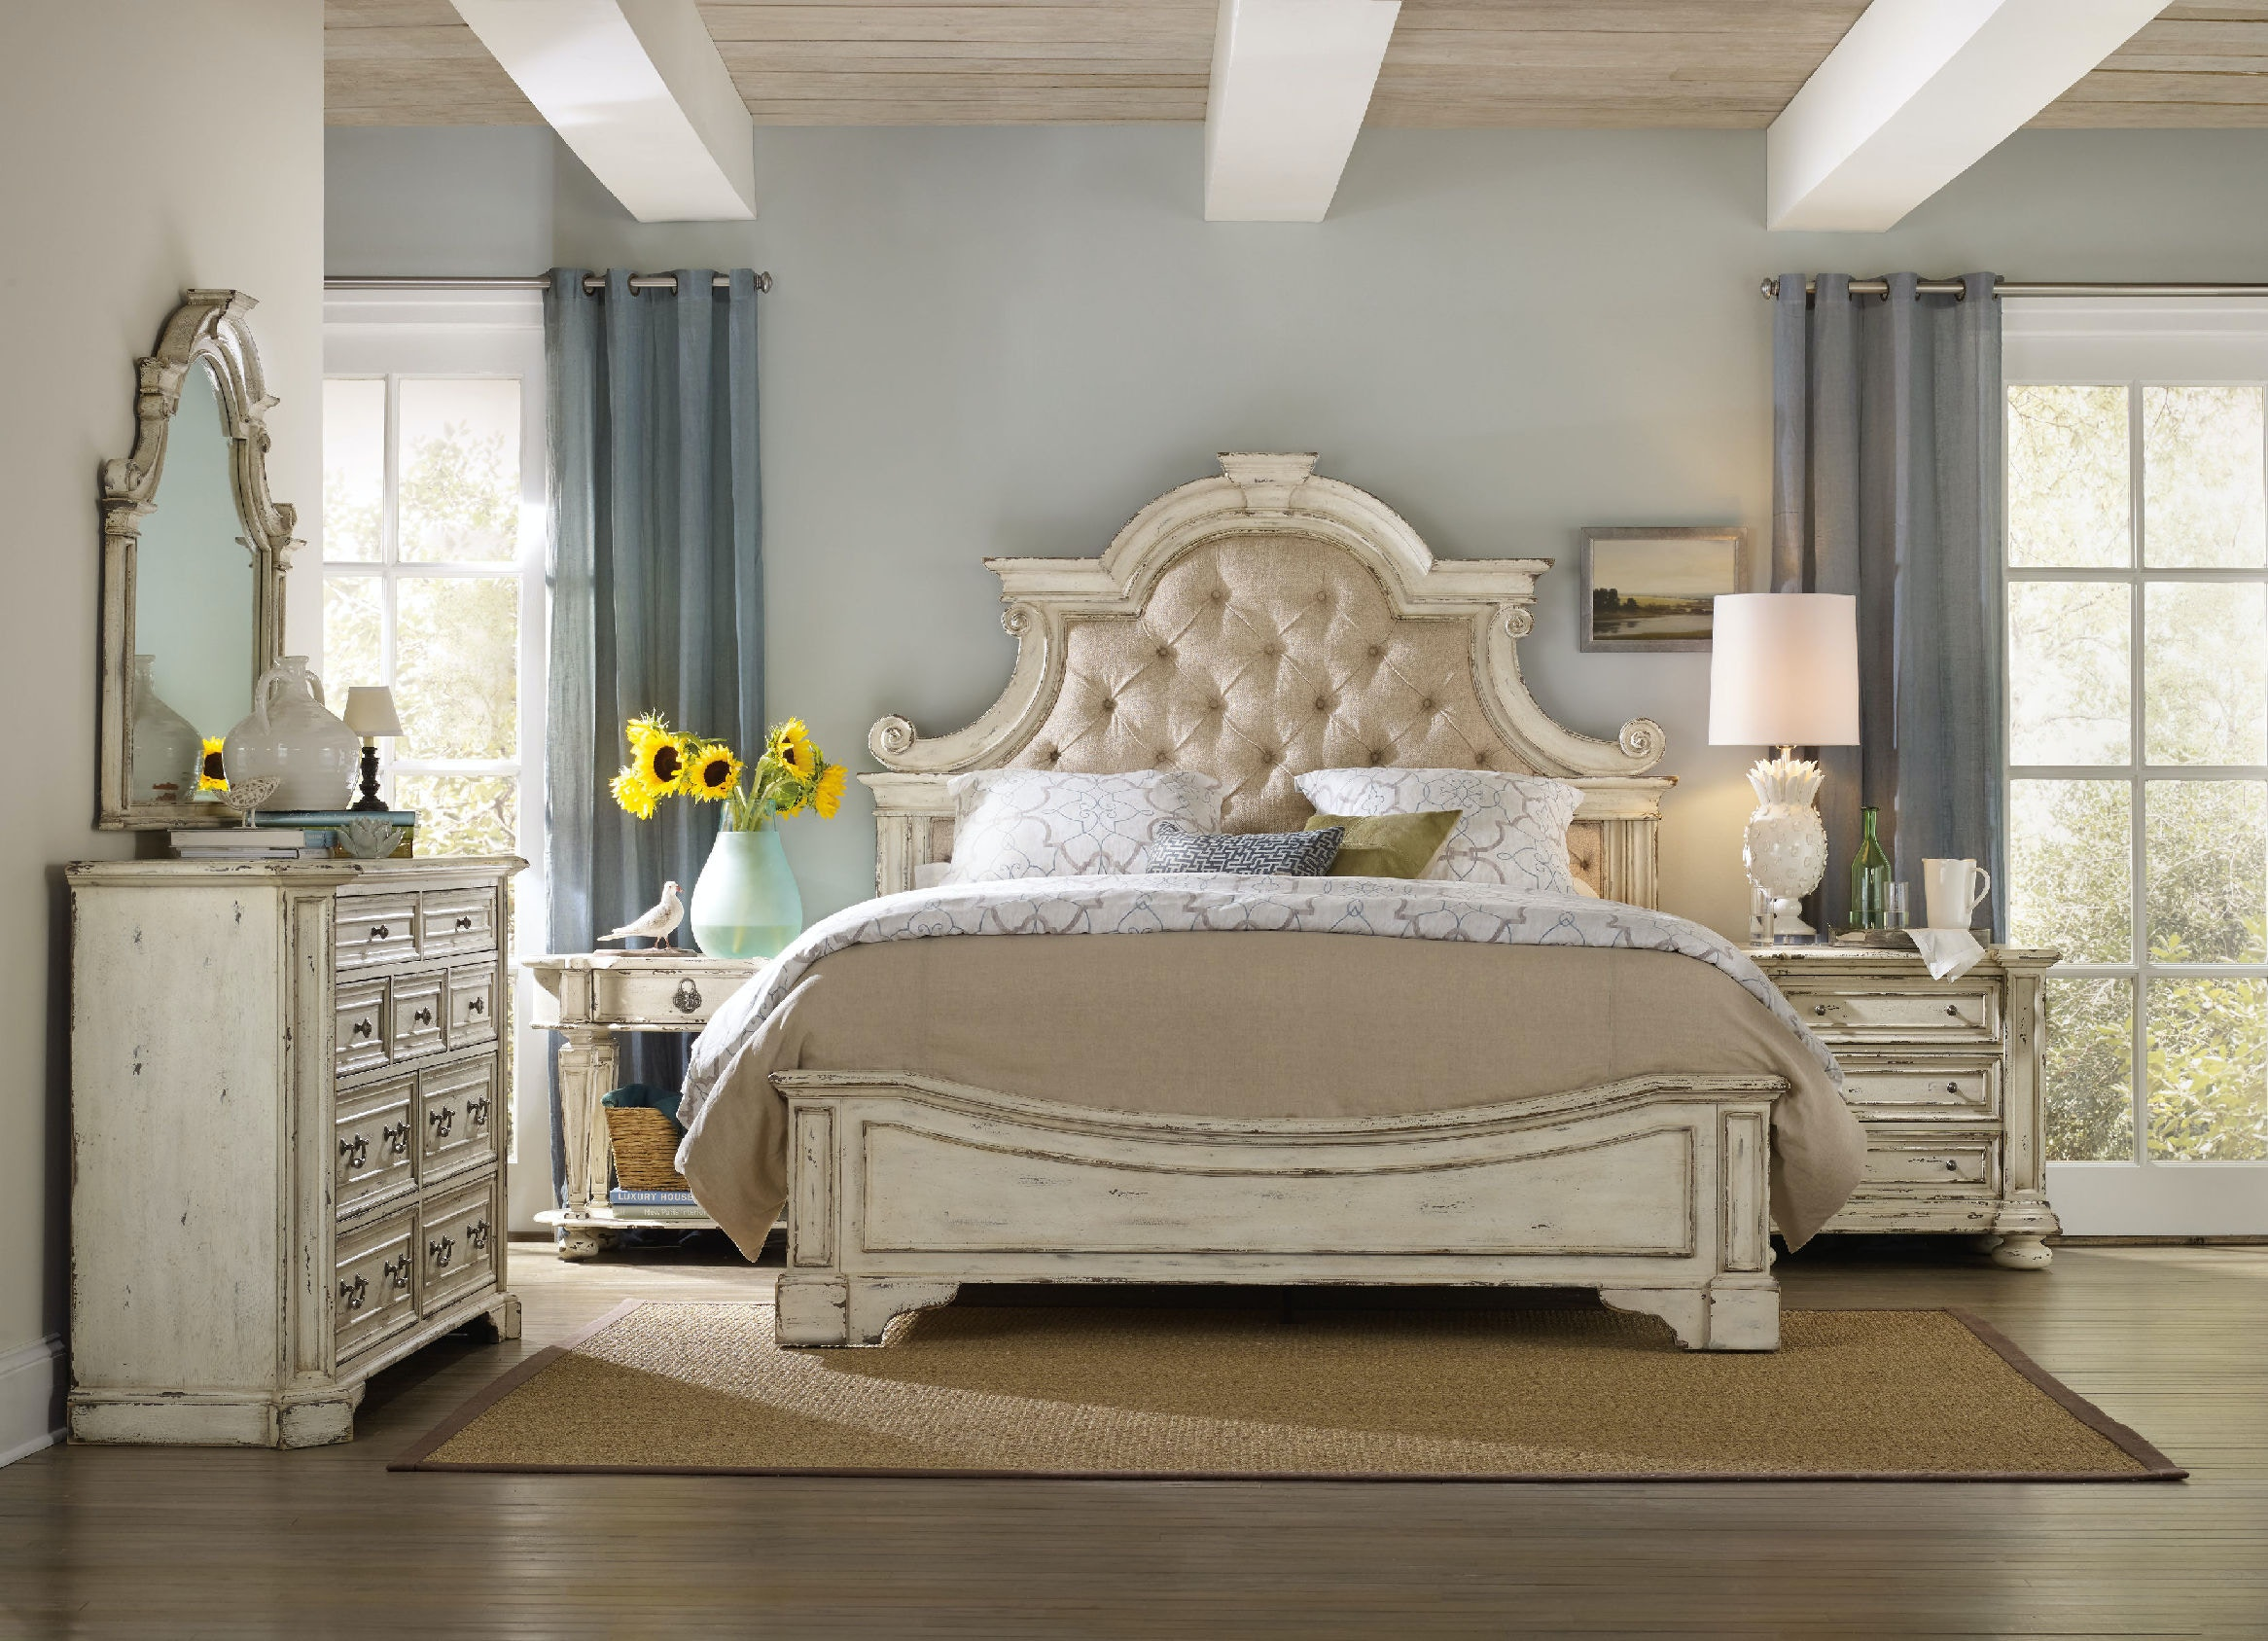 Hooker Furniture Sanctuary King Upholstered Bed 5403 90866